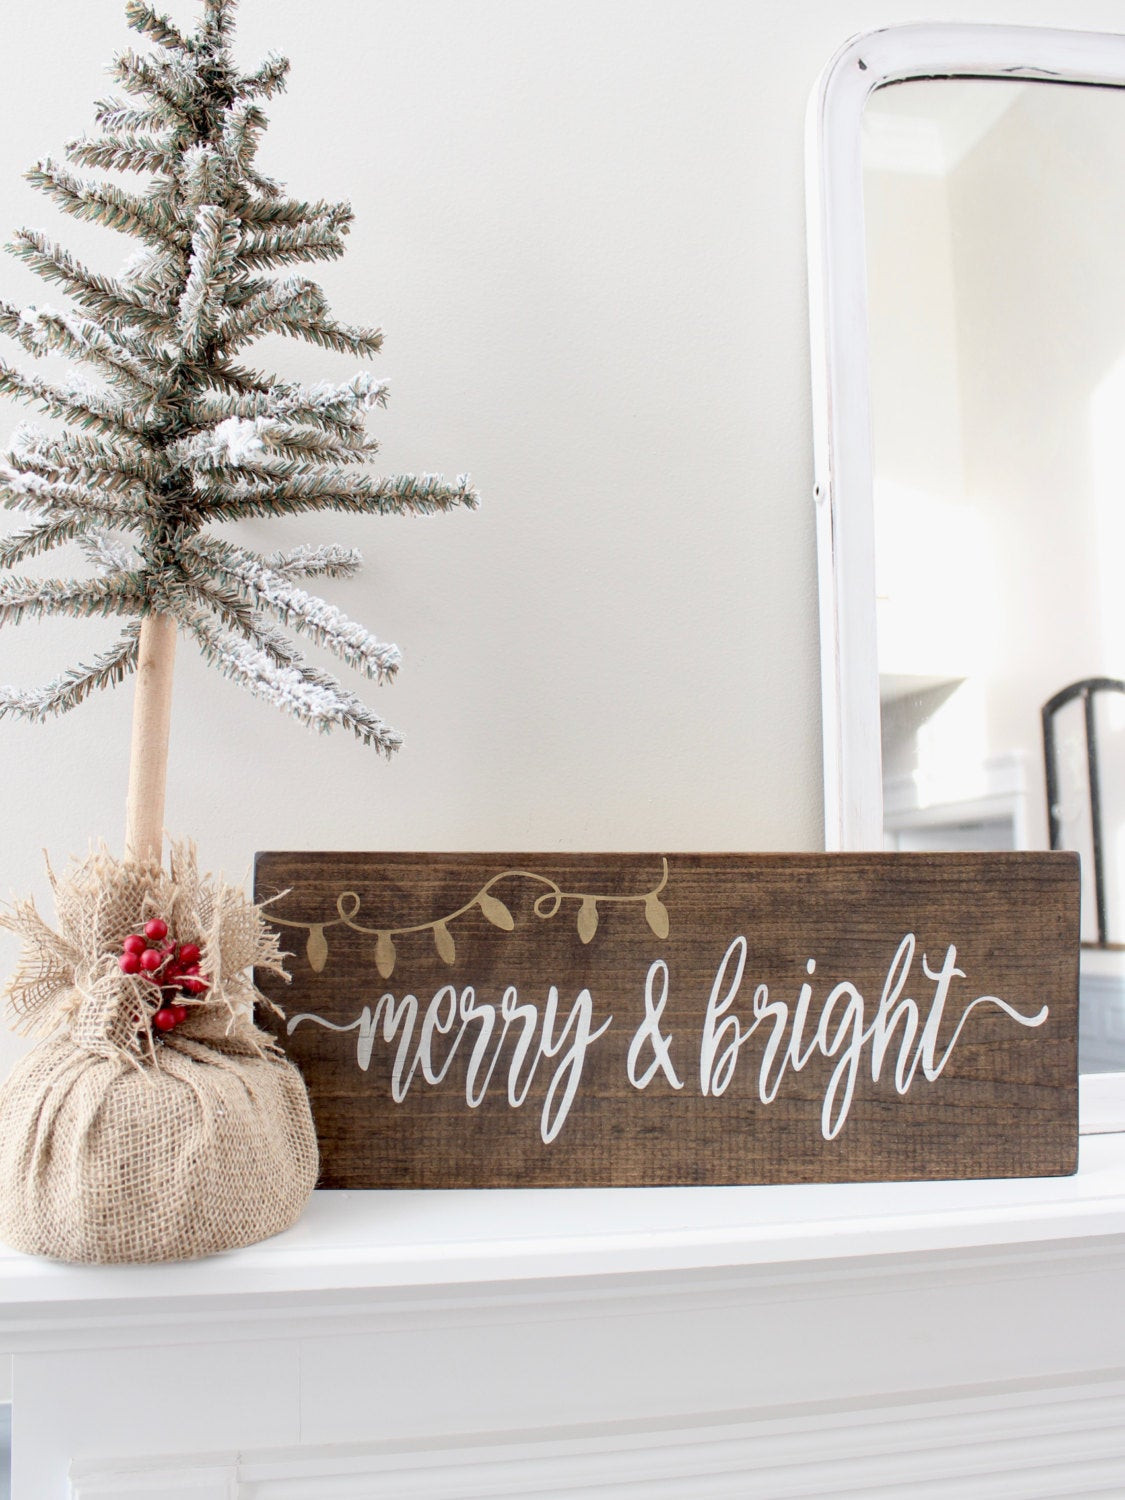 DIY Wooden Christmas Signs  Christmas Wood Stained Sign Rustic Holiday Sign Decor by